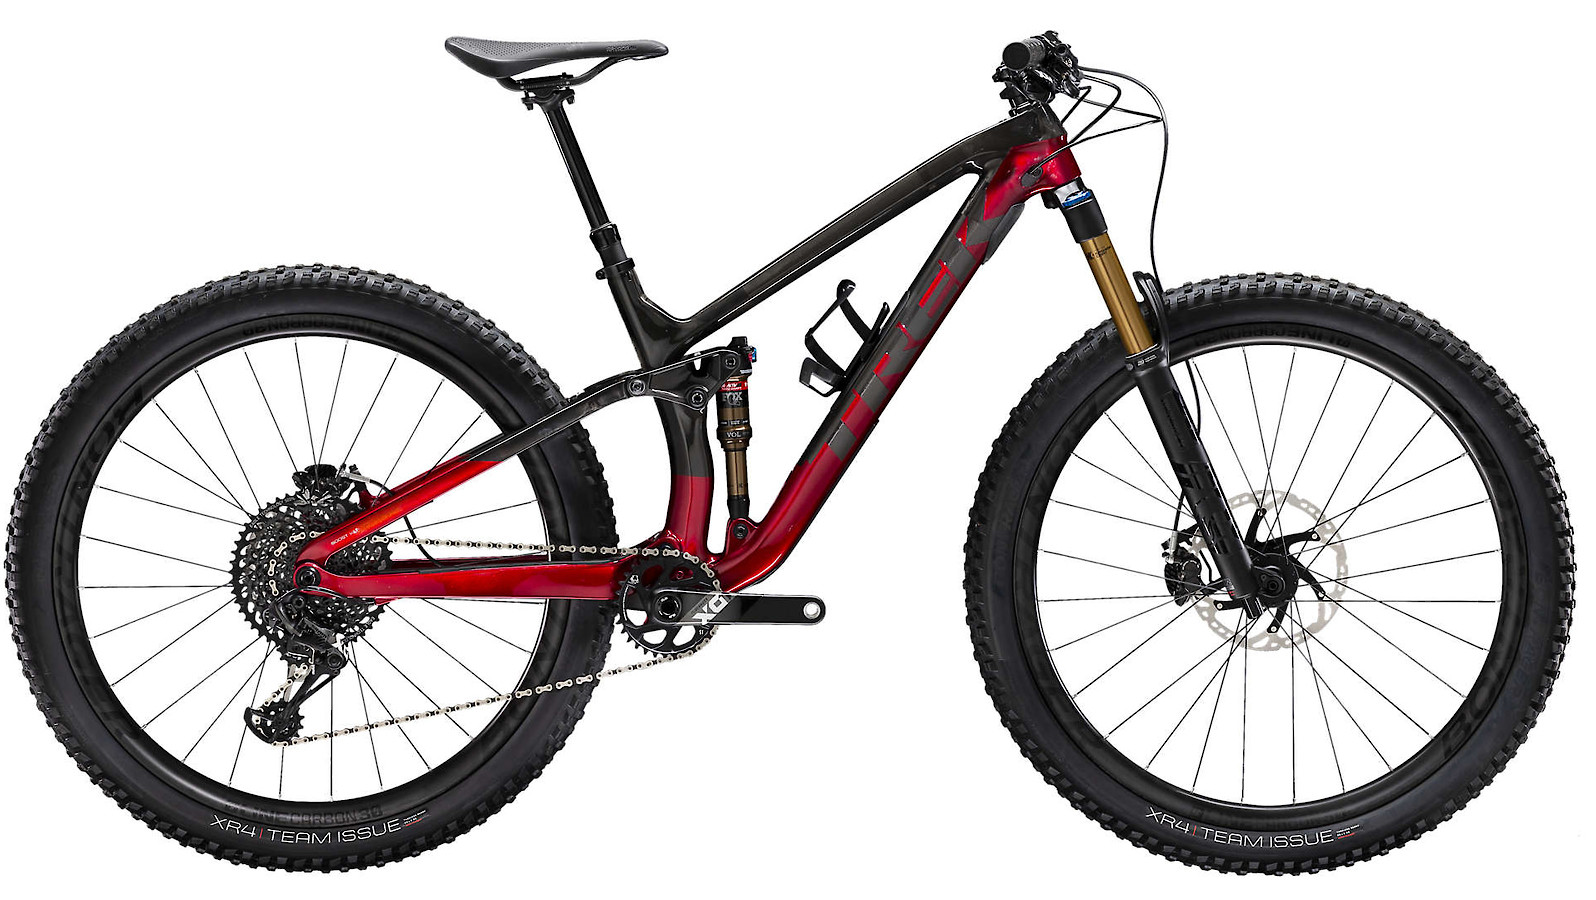 2020 Trek Fuel EX 9.9 Raw Carbon Rage Red